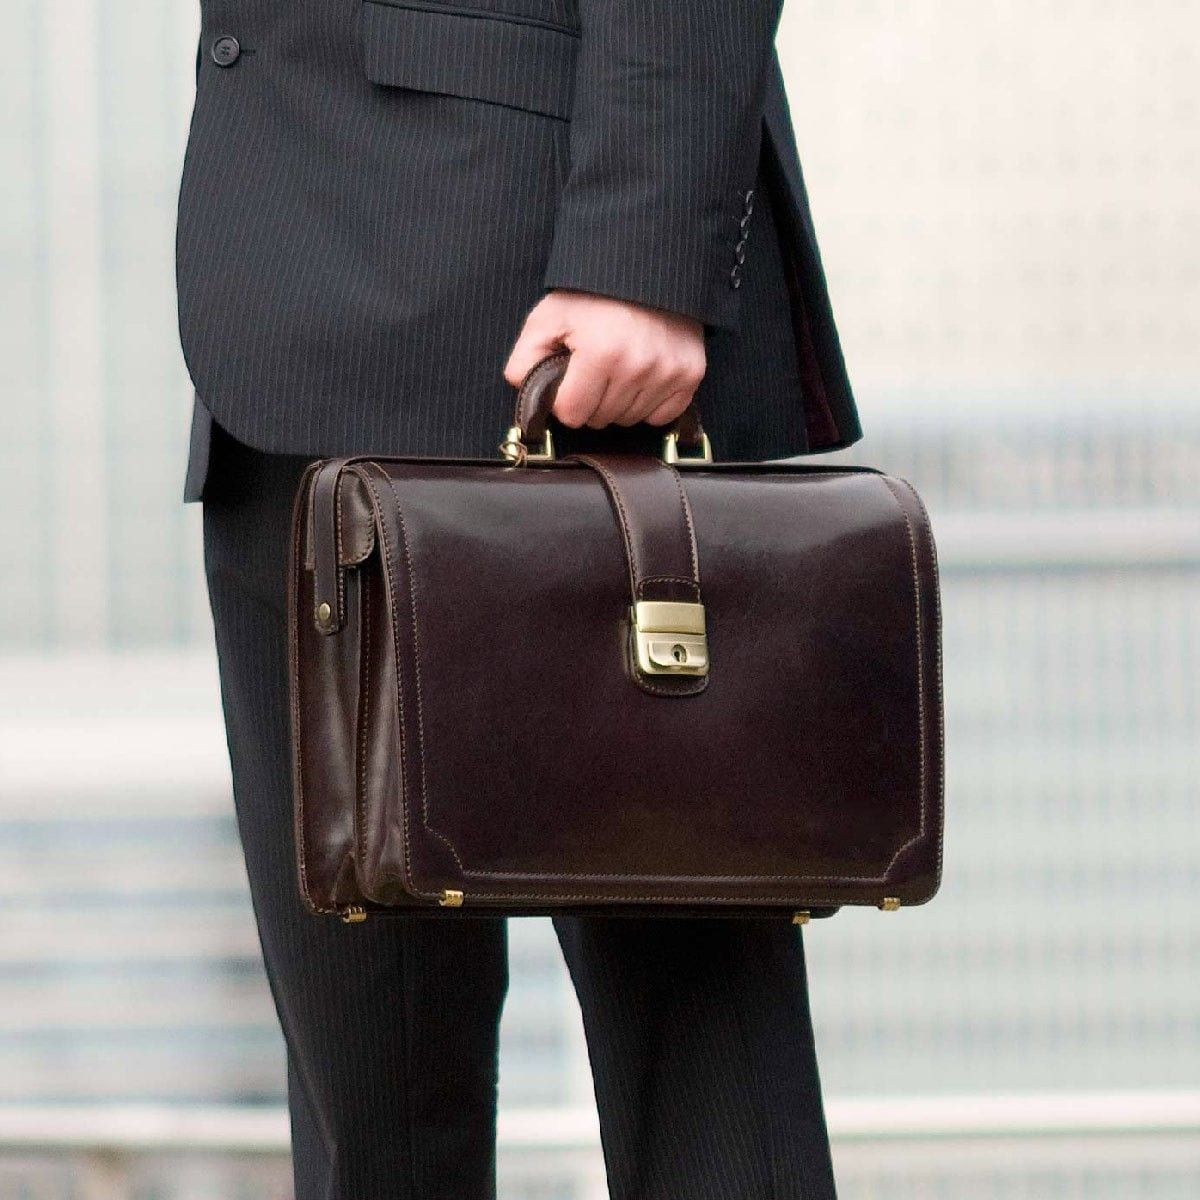 Best Rolling Briefcase For Lawyers - Three Considerations When Shopping For Lawyers'